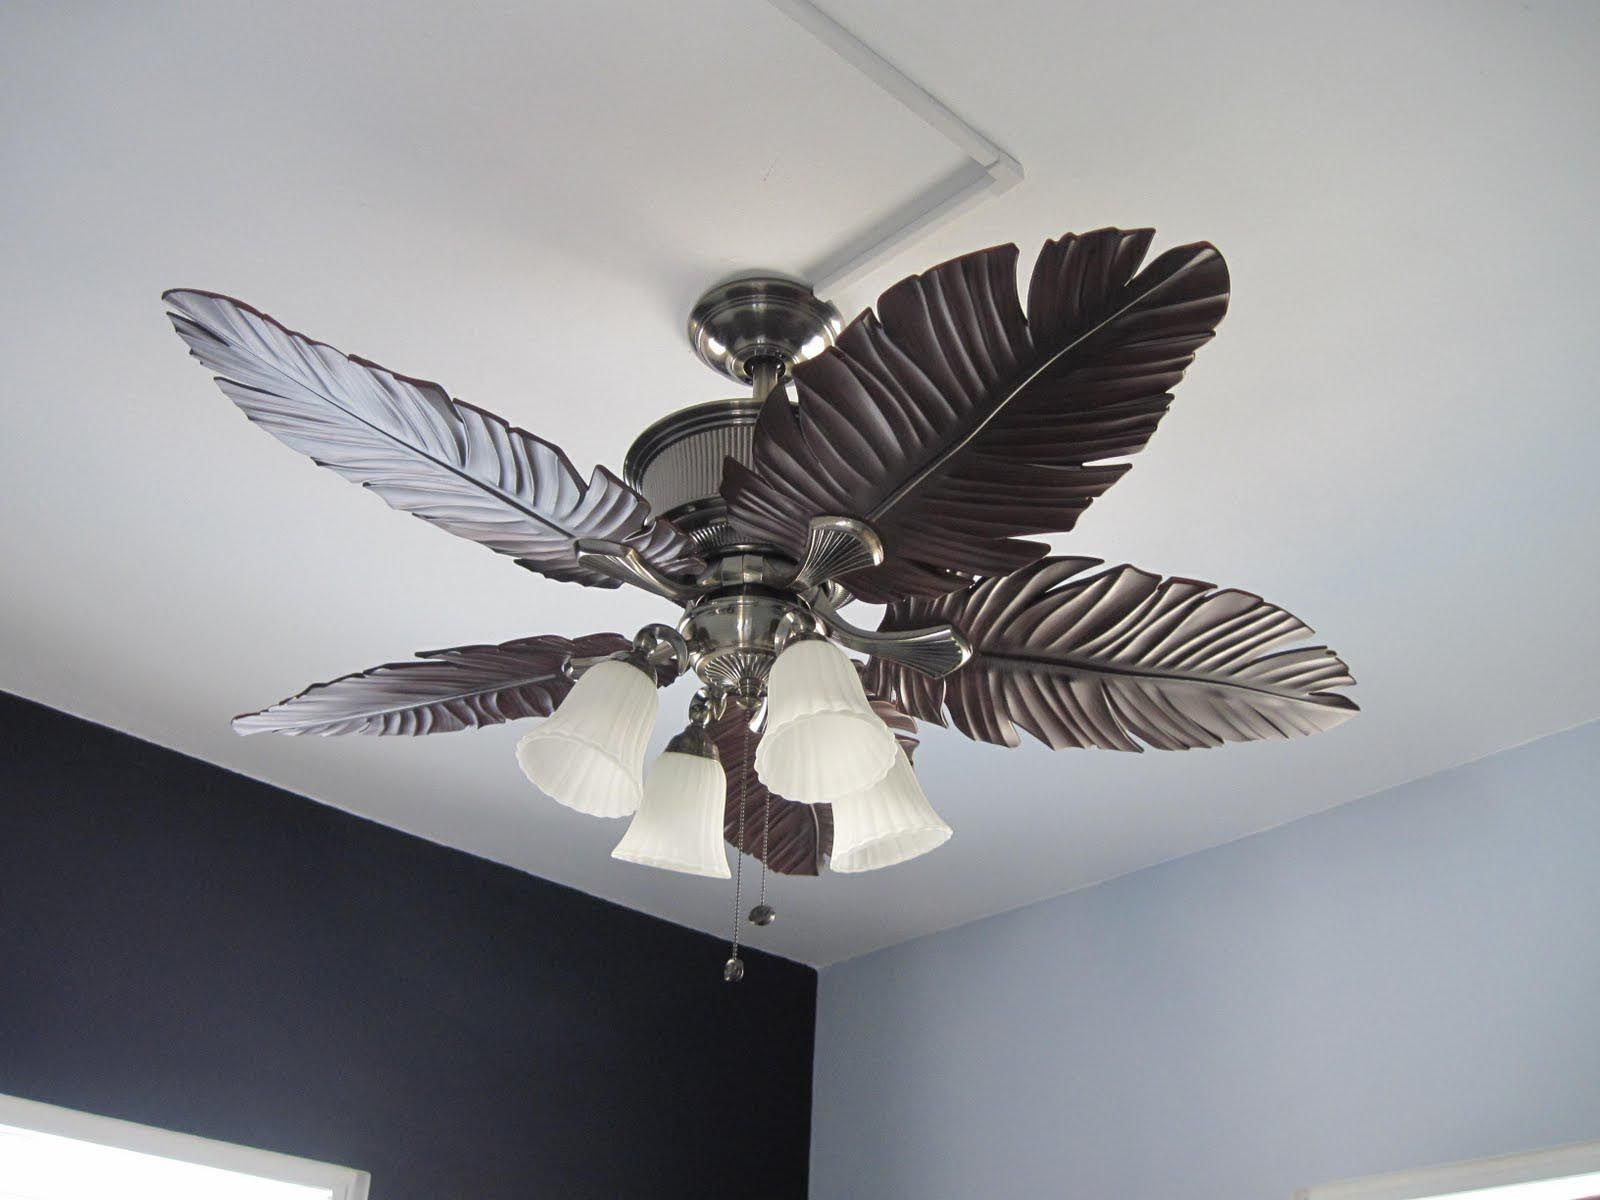 in matthews textured none products fan no safety todaysfans low kit spo co ceilings dagny bronze fans cage light metal dual with shown ceiling for